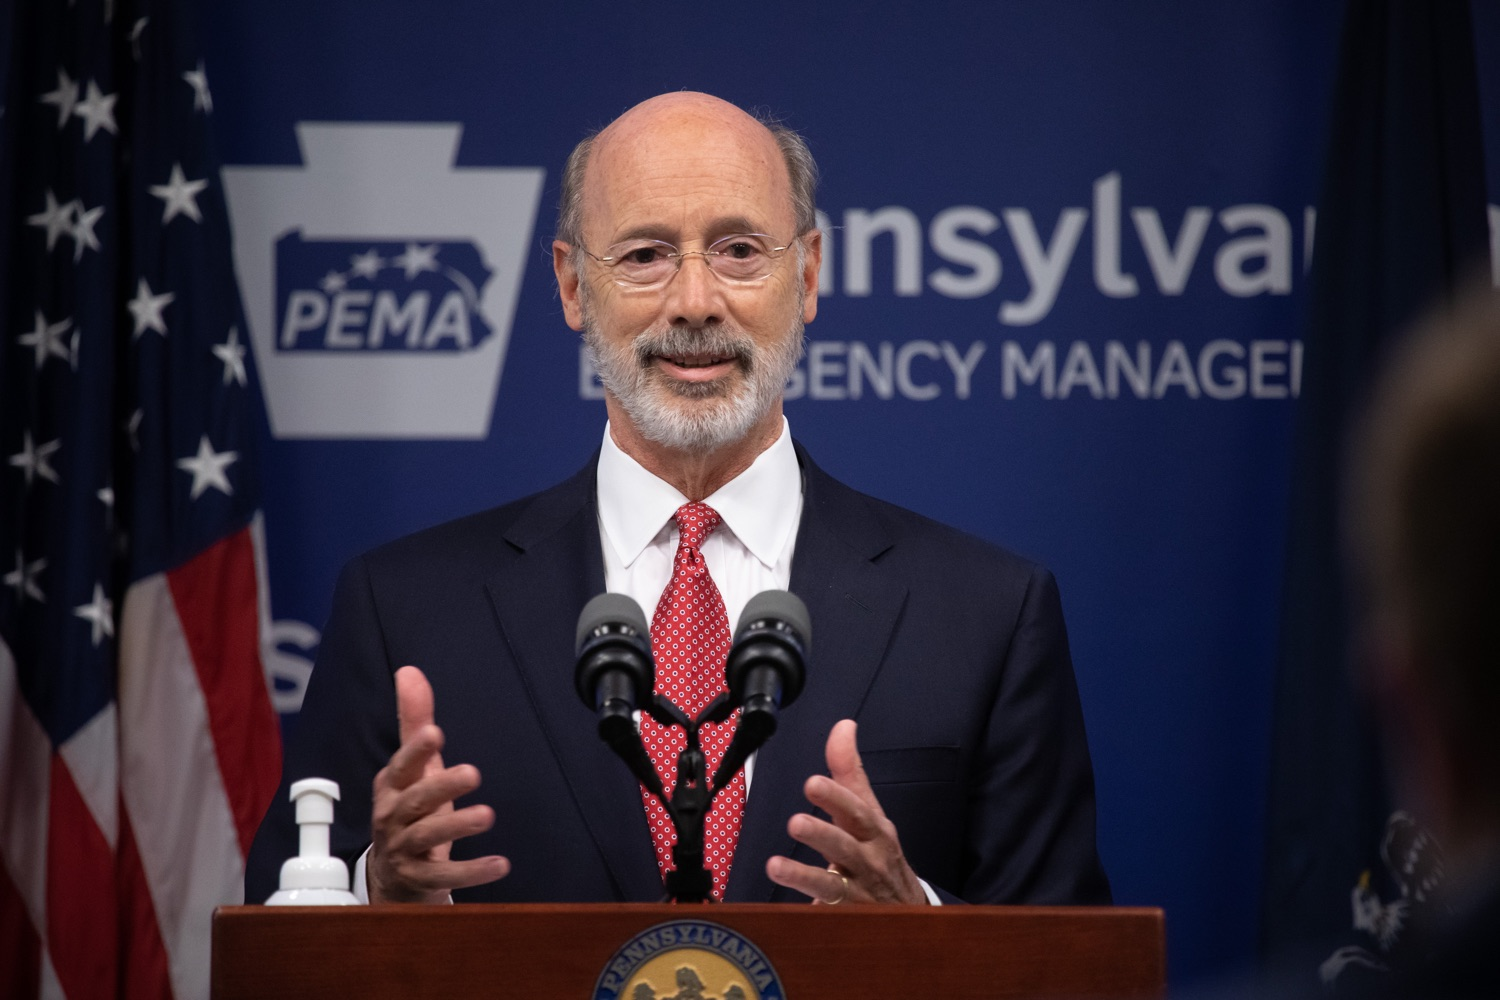 "<a href=""https://filesource.wostreaming.net/commonwealthofpa/photo/18091_gov_covid_update_dz_01.jpg"" target=""_blank"">⇣ Download Photo<br></a>Pennsylvania Governor Tom Wolf answering questions from the press.  As states across the country begin to reopen and nearly half are seeing COVID-19 cases rise, Governor Tom Wolf announced Friday that Pennsylvania is not one of them. ...Today at a daily COVID briefing with Health Secretary Dr. Rachel Levine, he noted another milestone: The Centers for Disease Control and Prevention proprietary data for states indicates that we are one of just three states that has had a downward trajectory of COVID- 19 cases for more than 42 days. The other two states are Montana and Hawaii.  JUNE 17, 2020 - HARRISBURG, PA."